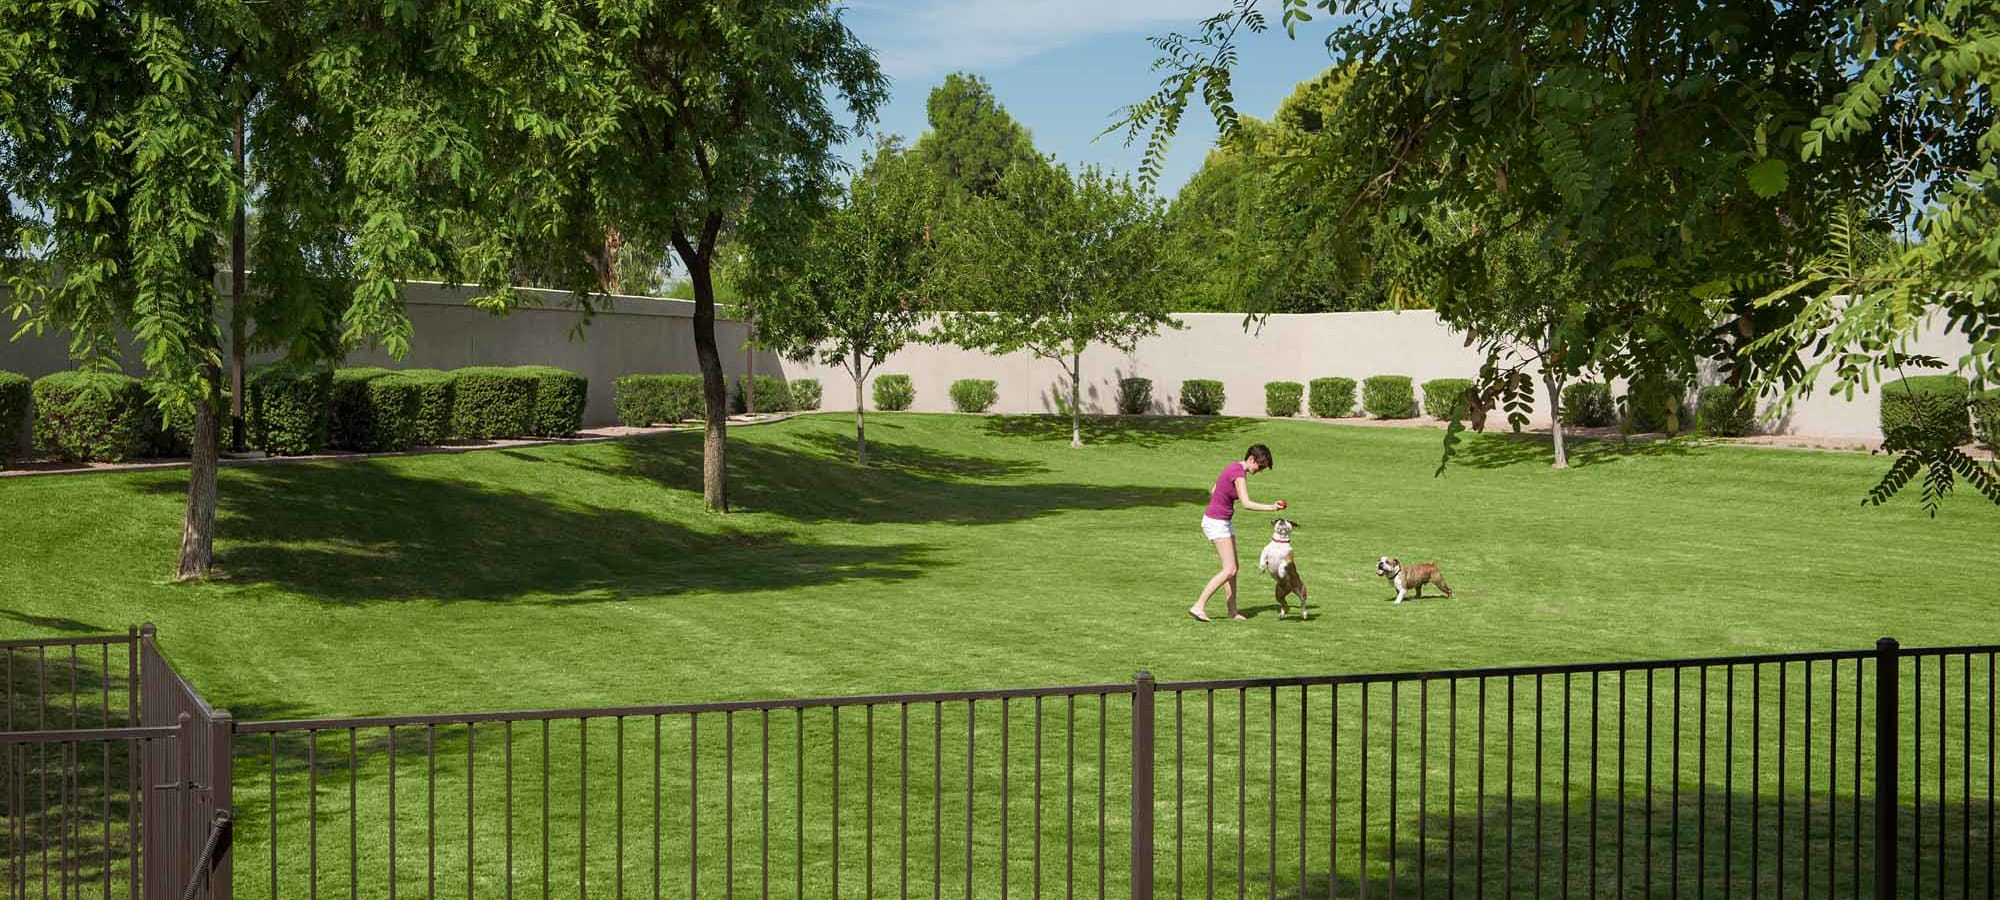 Spacious gated dog park at San Marbeya in Tempe, Arizona